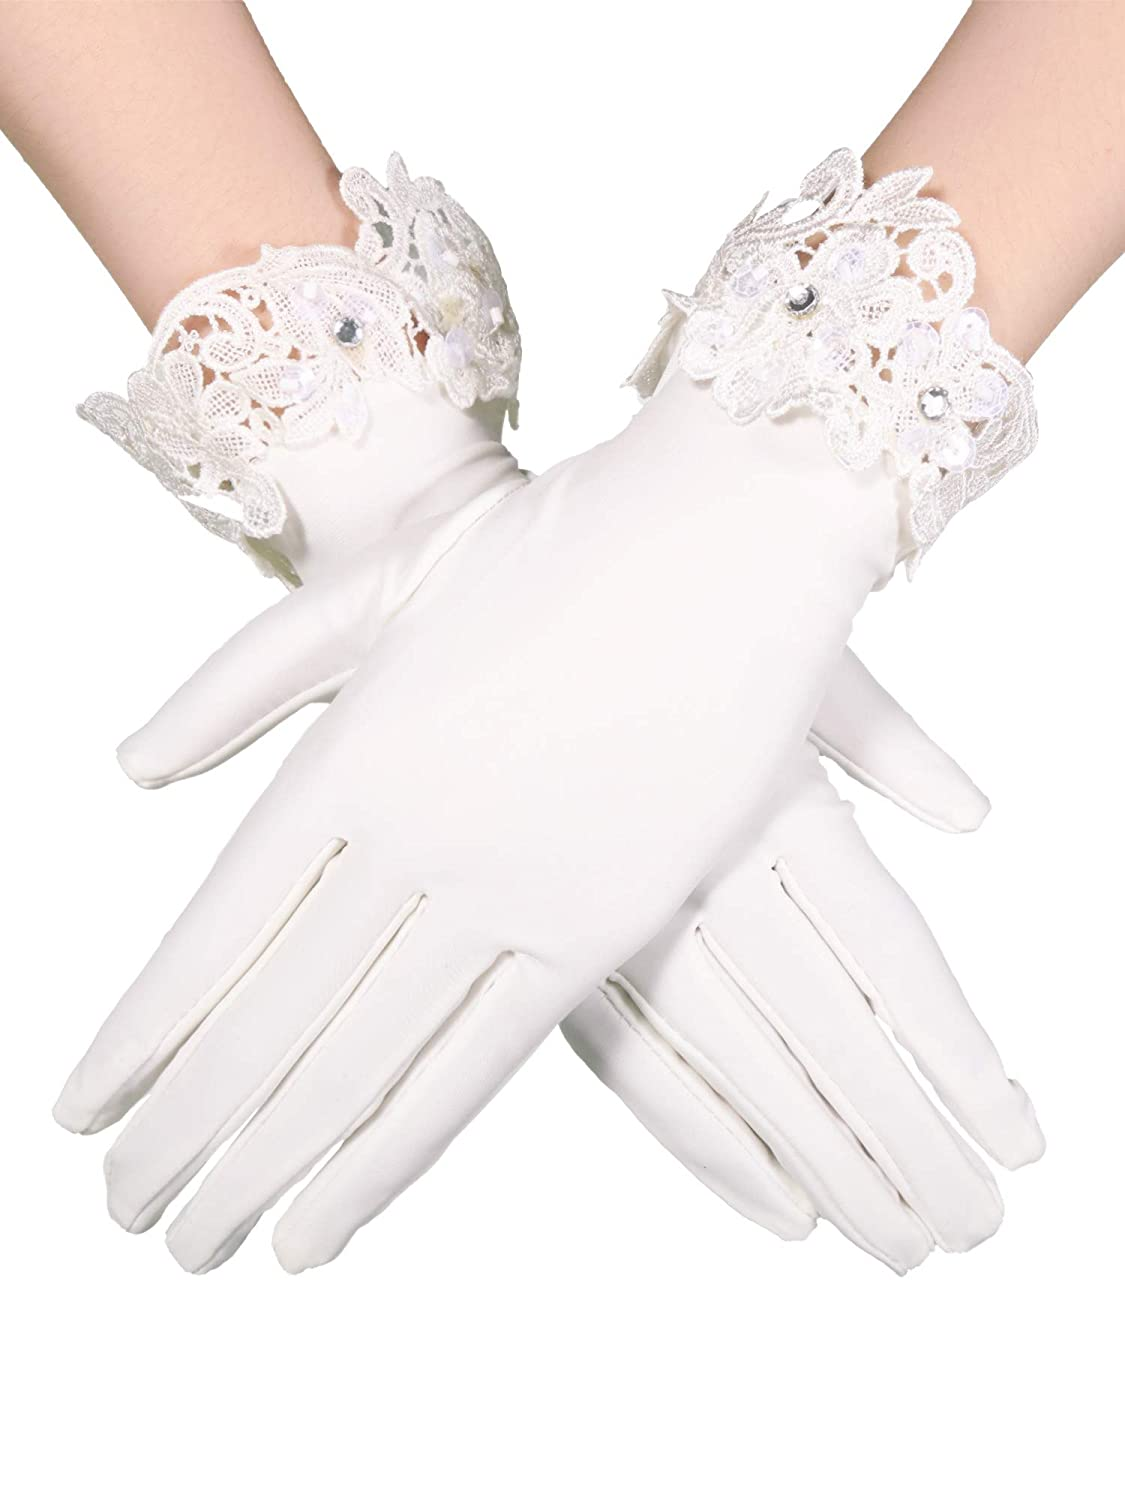 Vintage Gloves History- 1900, 1910, 1920, 1930 1940, 1950, 1960 Sumind Short Satin Gloves Wrist Length Gloves Womens Gown Gloves Opera Wedding Banquet Dress Glove for Party Dance $6.99 AT vintagedancer.com